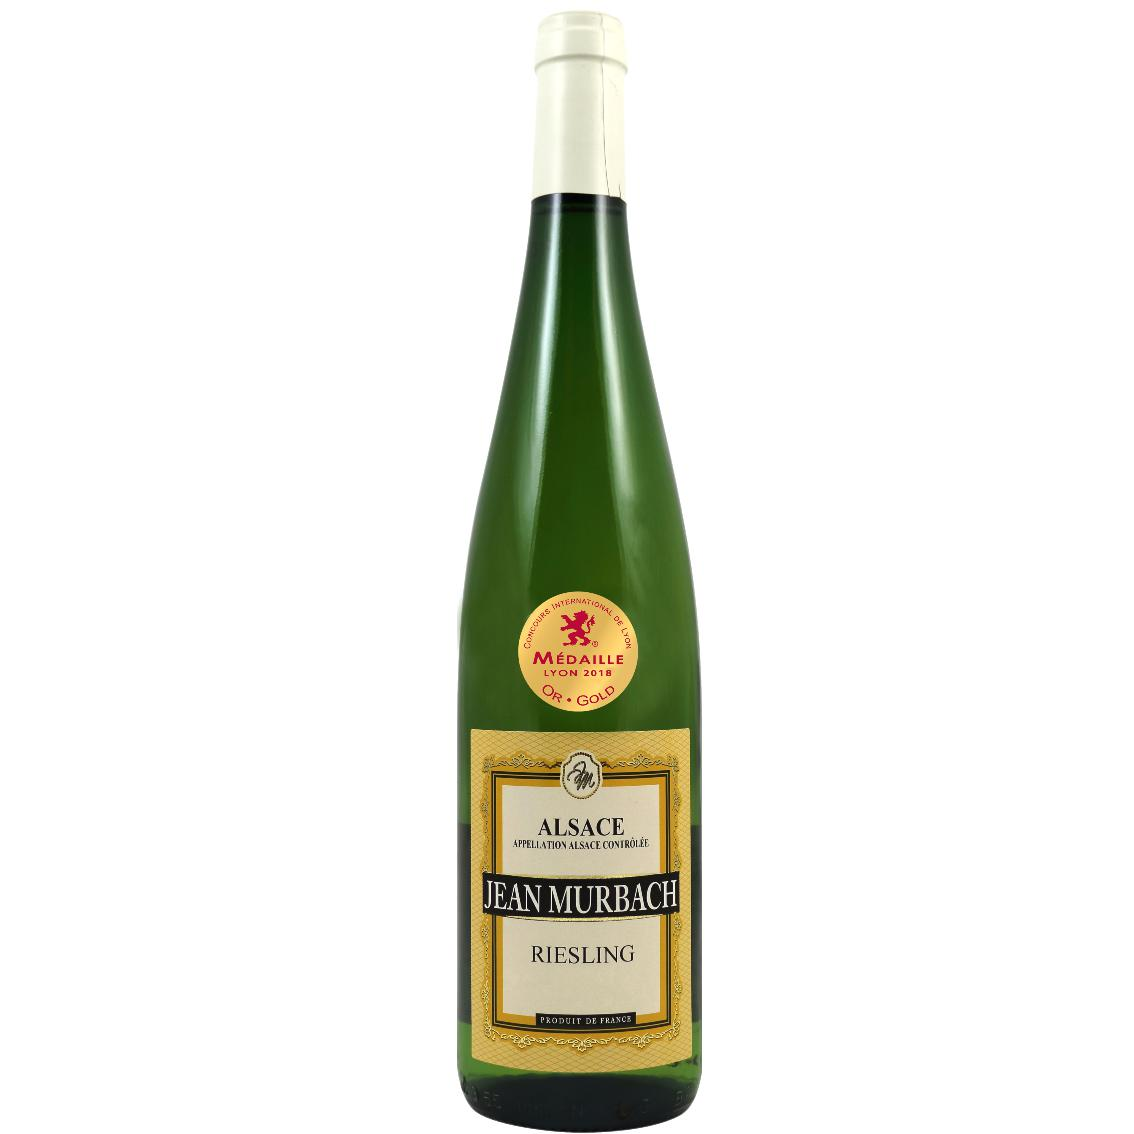 2019 Riesling Alsace - Jean Murbach